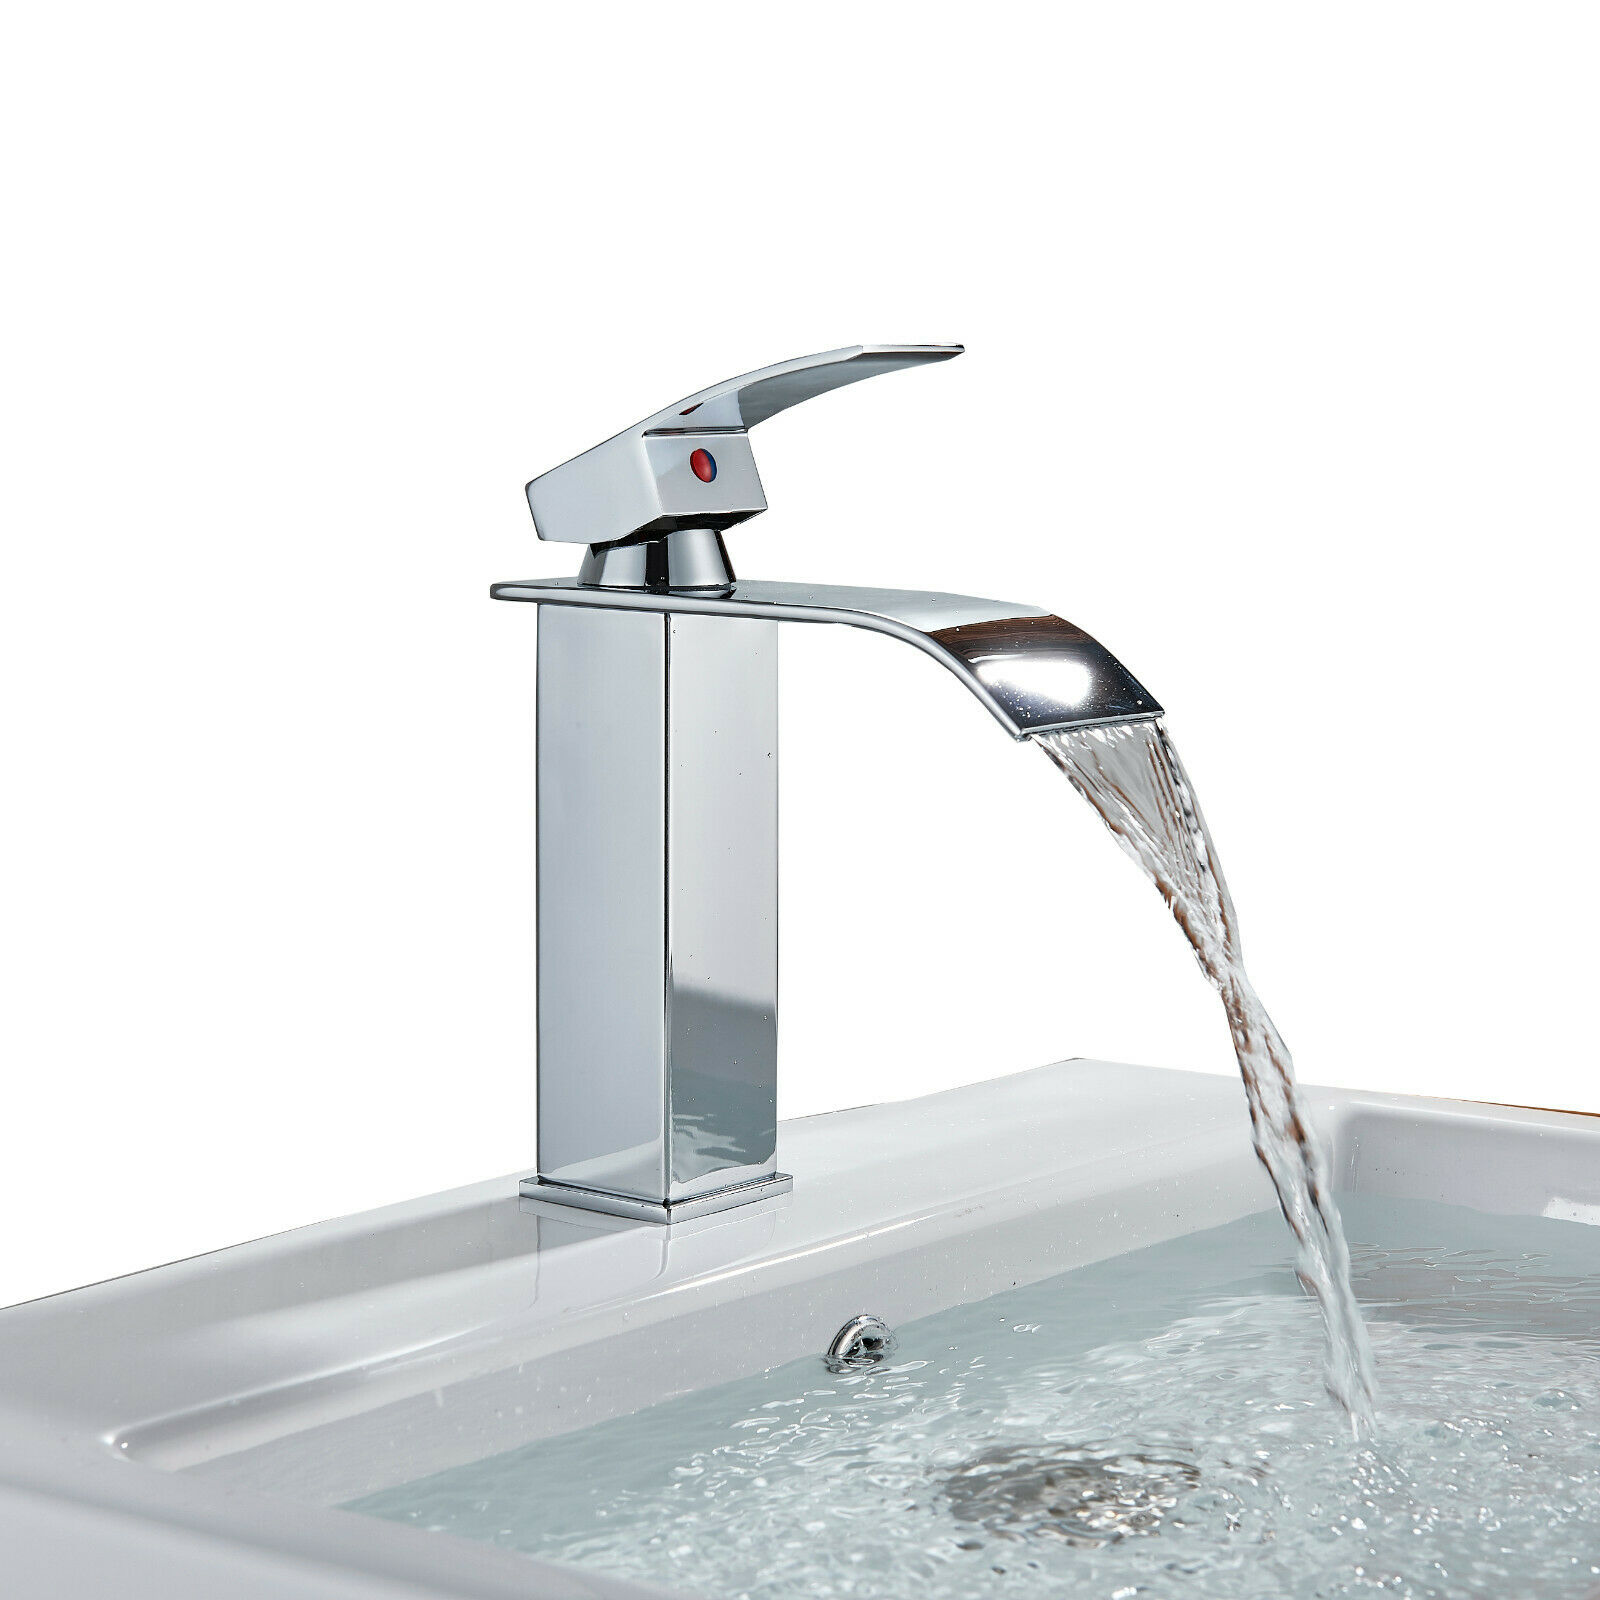 WIDESPREAD BATHROOM BASIN Faucet Oil Rubbed Bronze LED Waterfall ...